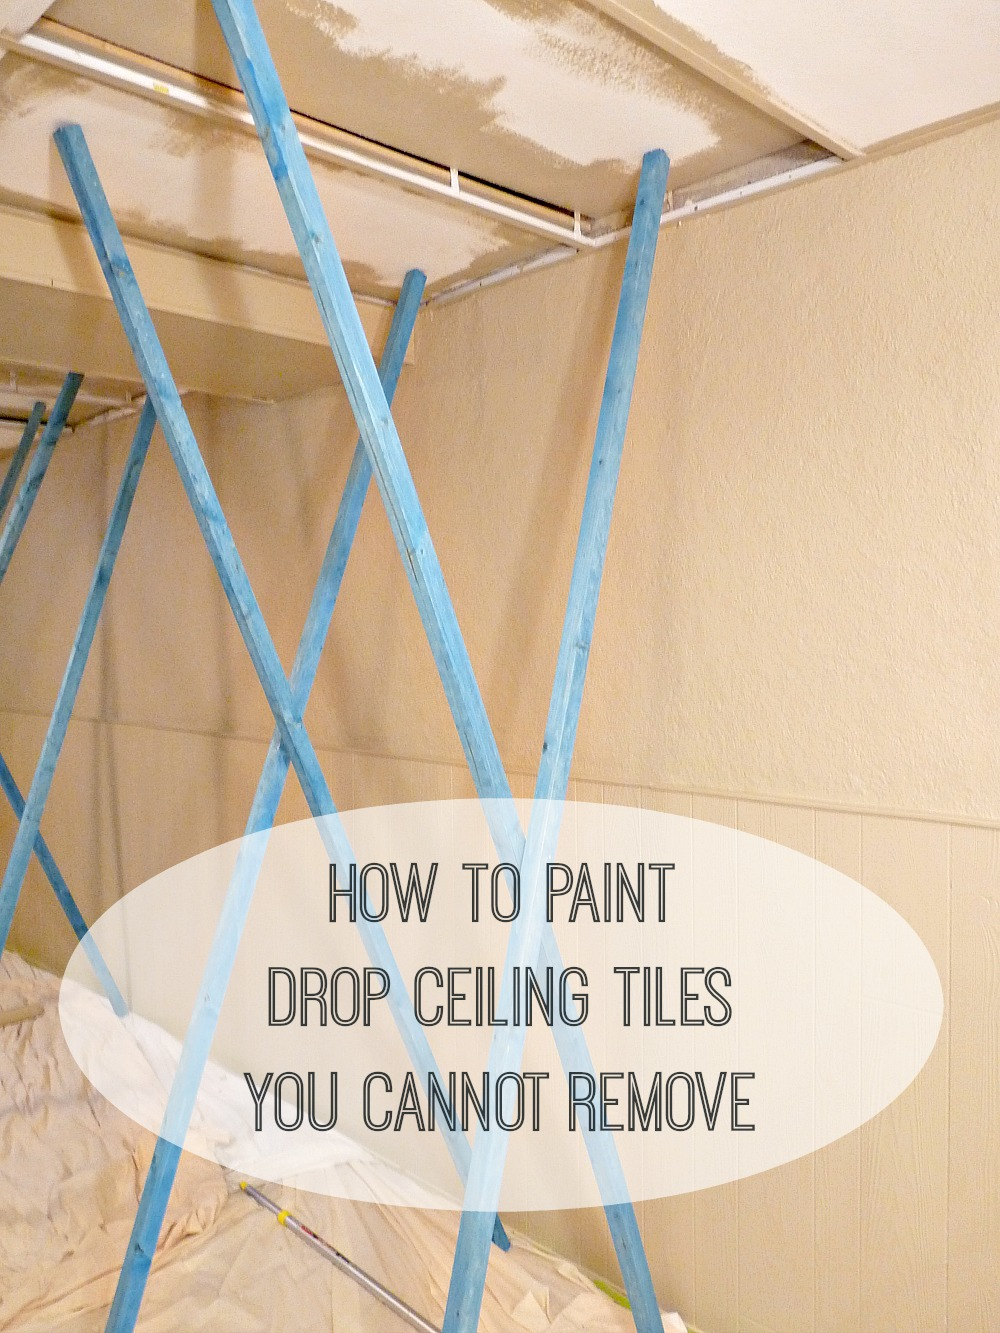 Basement update how to paint drop ceilings you cannot remove dans quick tip for painting ceiling tiles you cannot remove dailygadgetfo Images